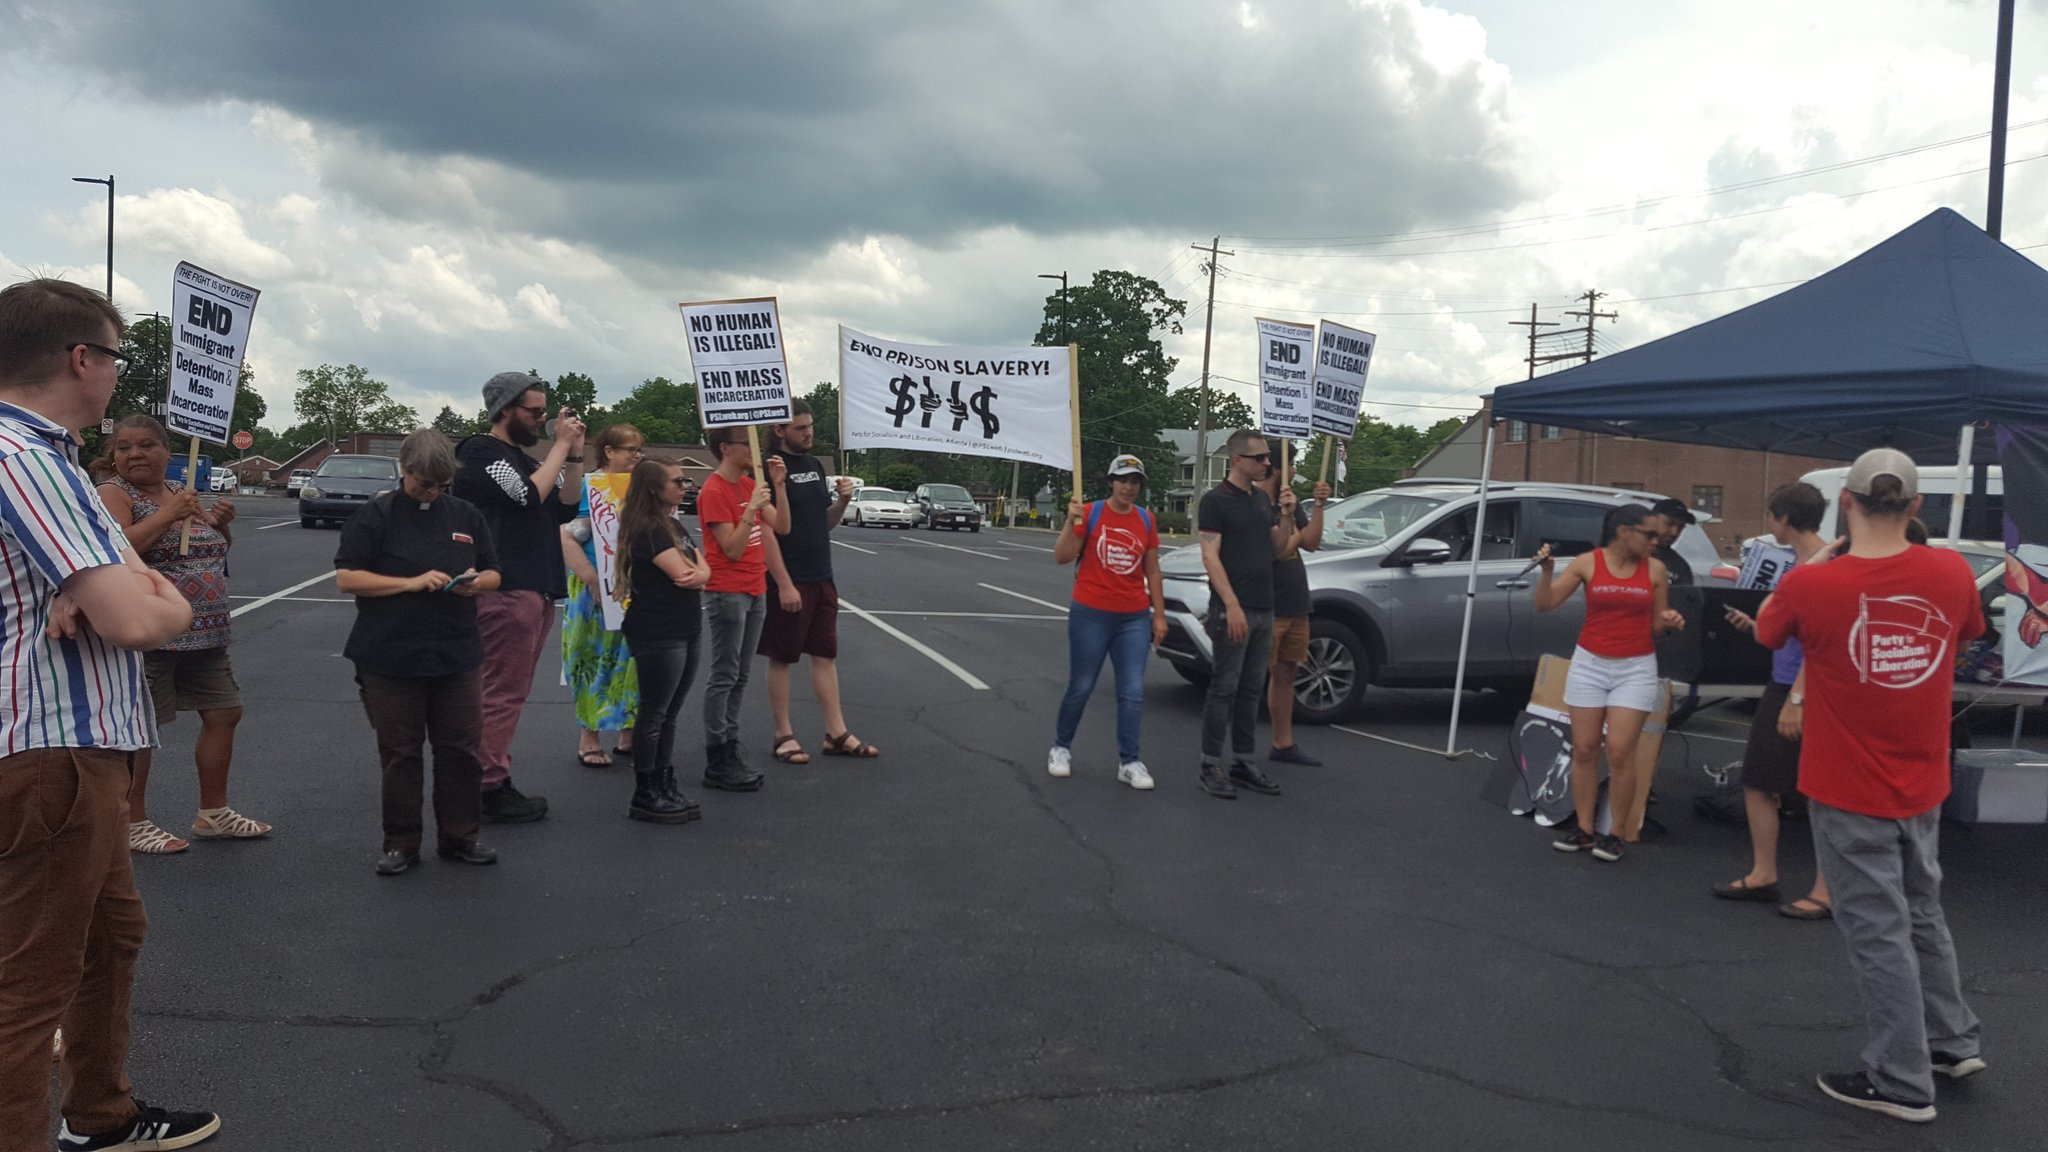 Shut down Etowah! Alabama Fathers Day rally for detained immigrants